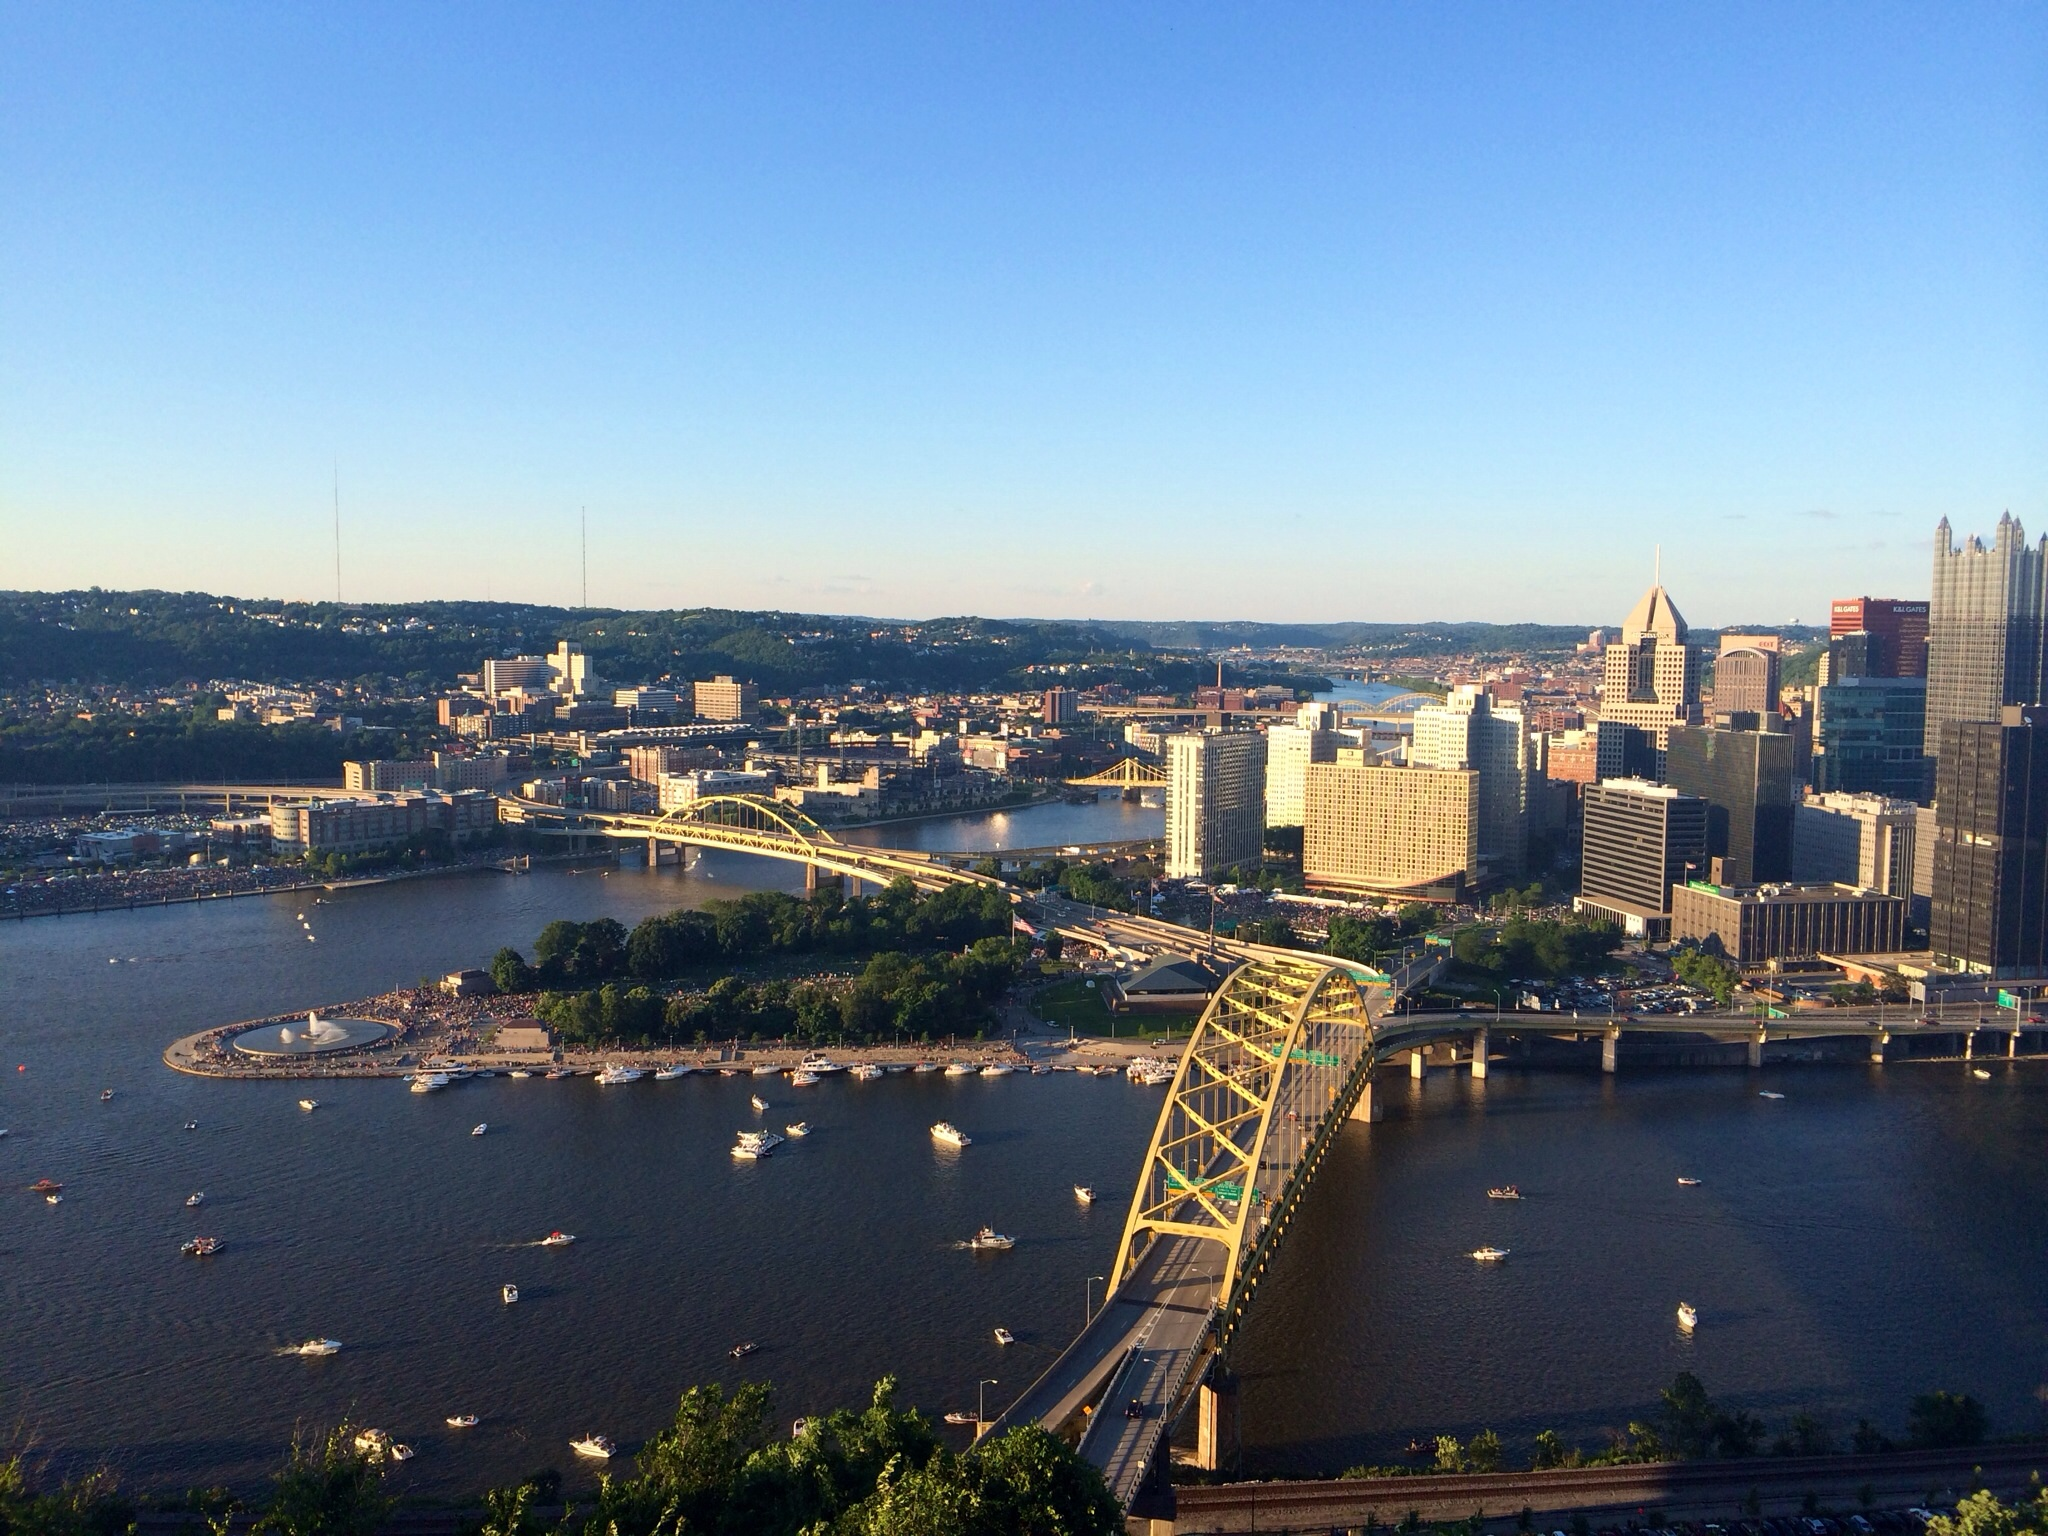 zillow features pittsburgh and parmesan princess in up ing city